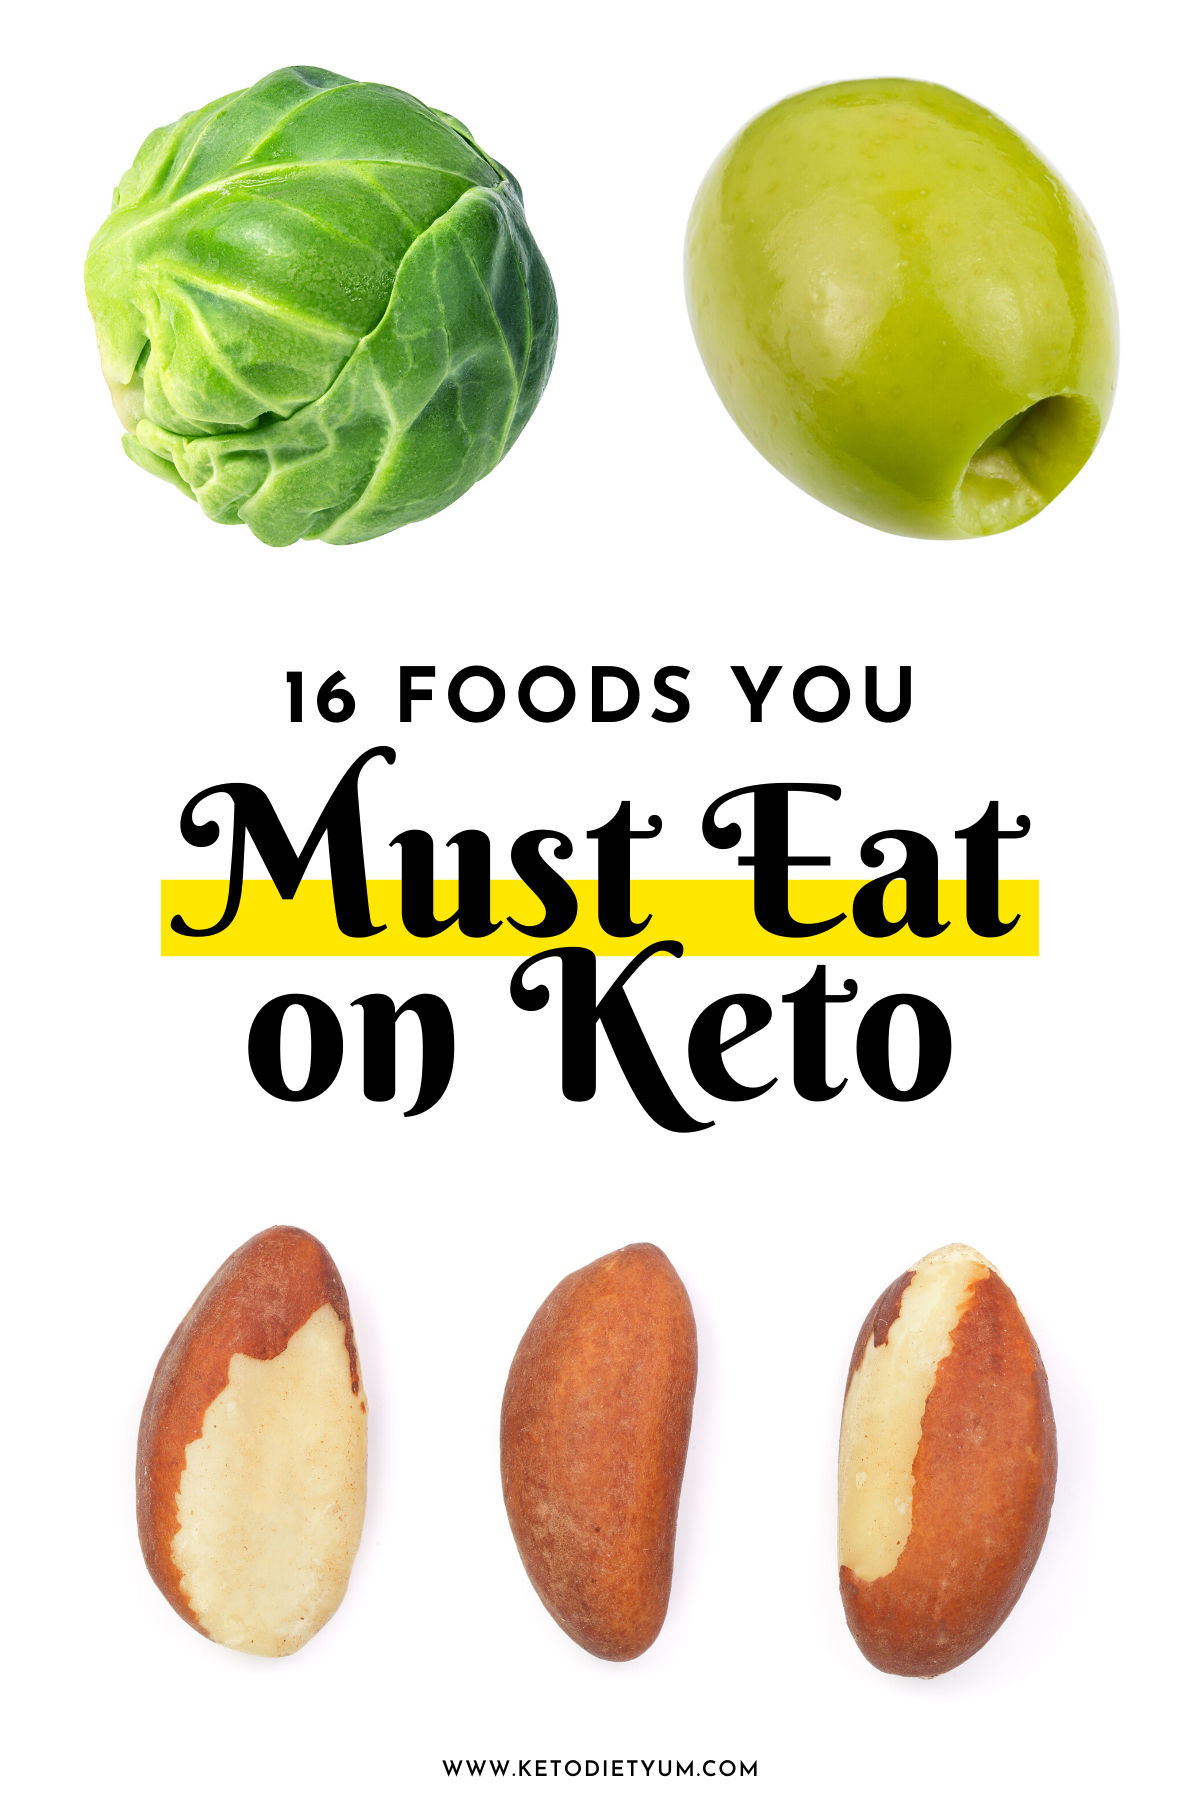 On average, between 20-30 grams of carbs is the recommended amount for everyday keto dieting, but when you keep your carb intake as low as possible, you're going to get better results quicker.